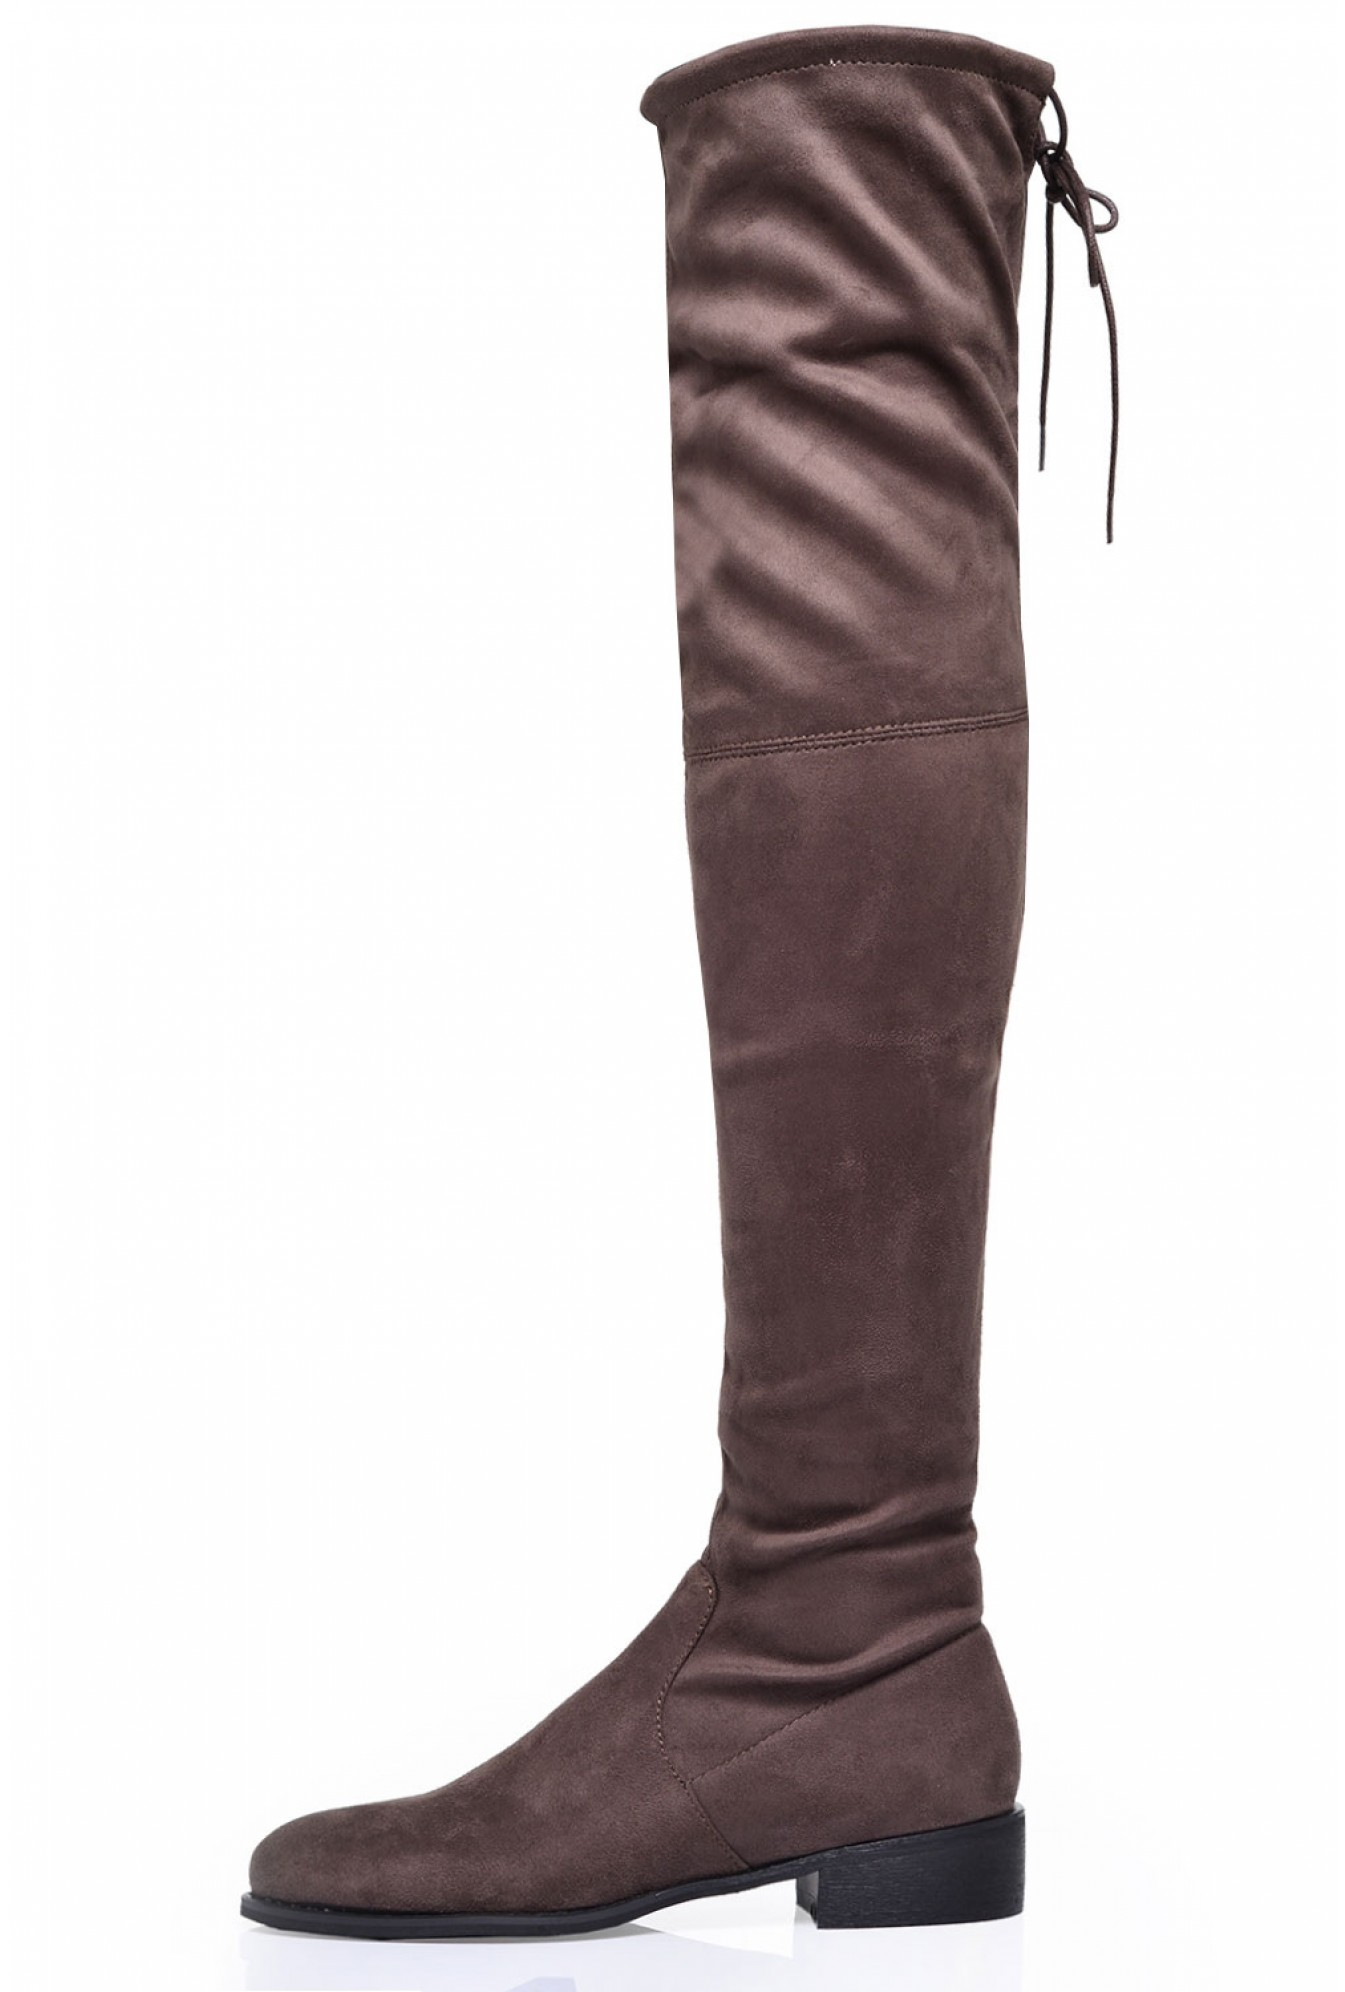 33e382f037a5 Indigo Footwear Elle Flat Over the Knee Boots in Taupe Suede